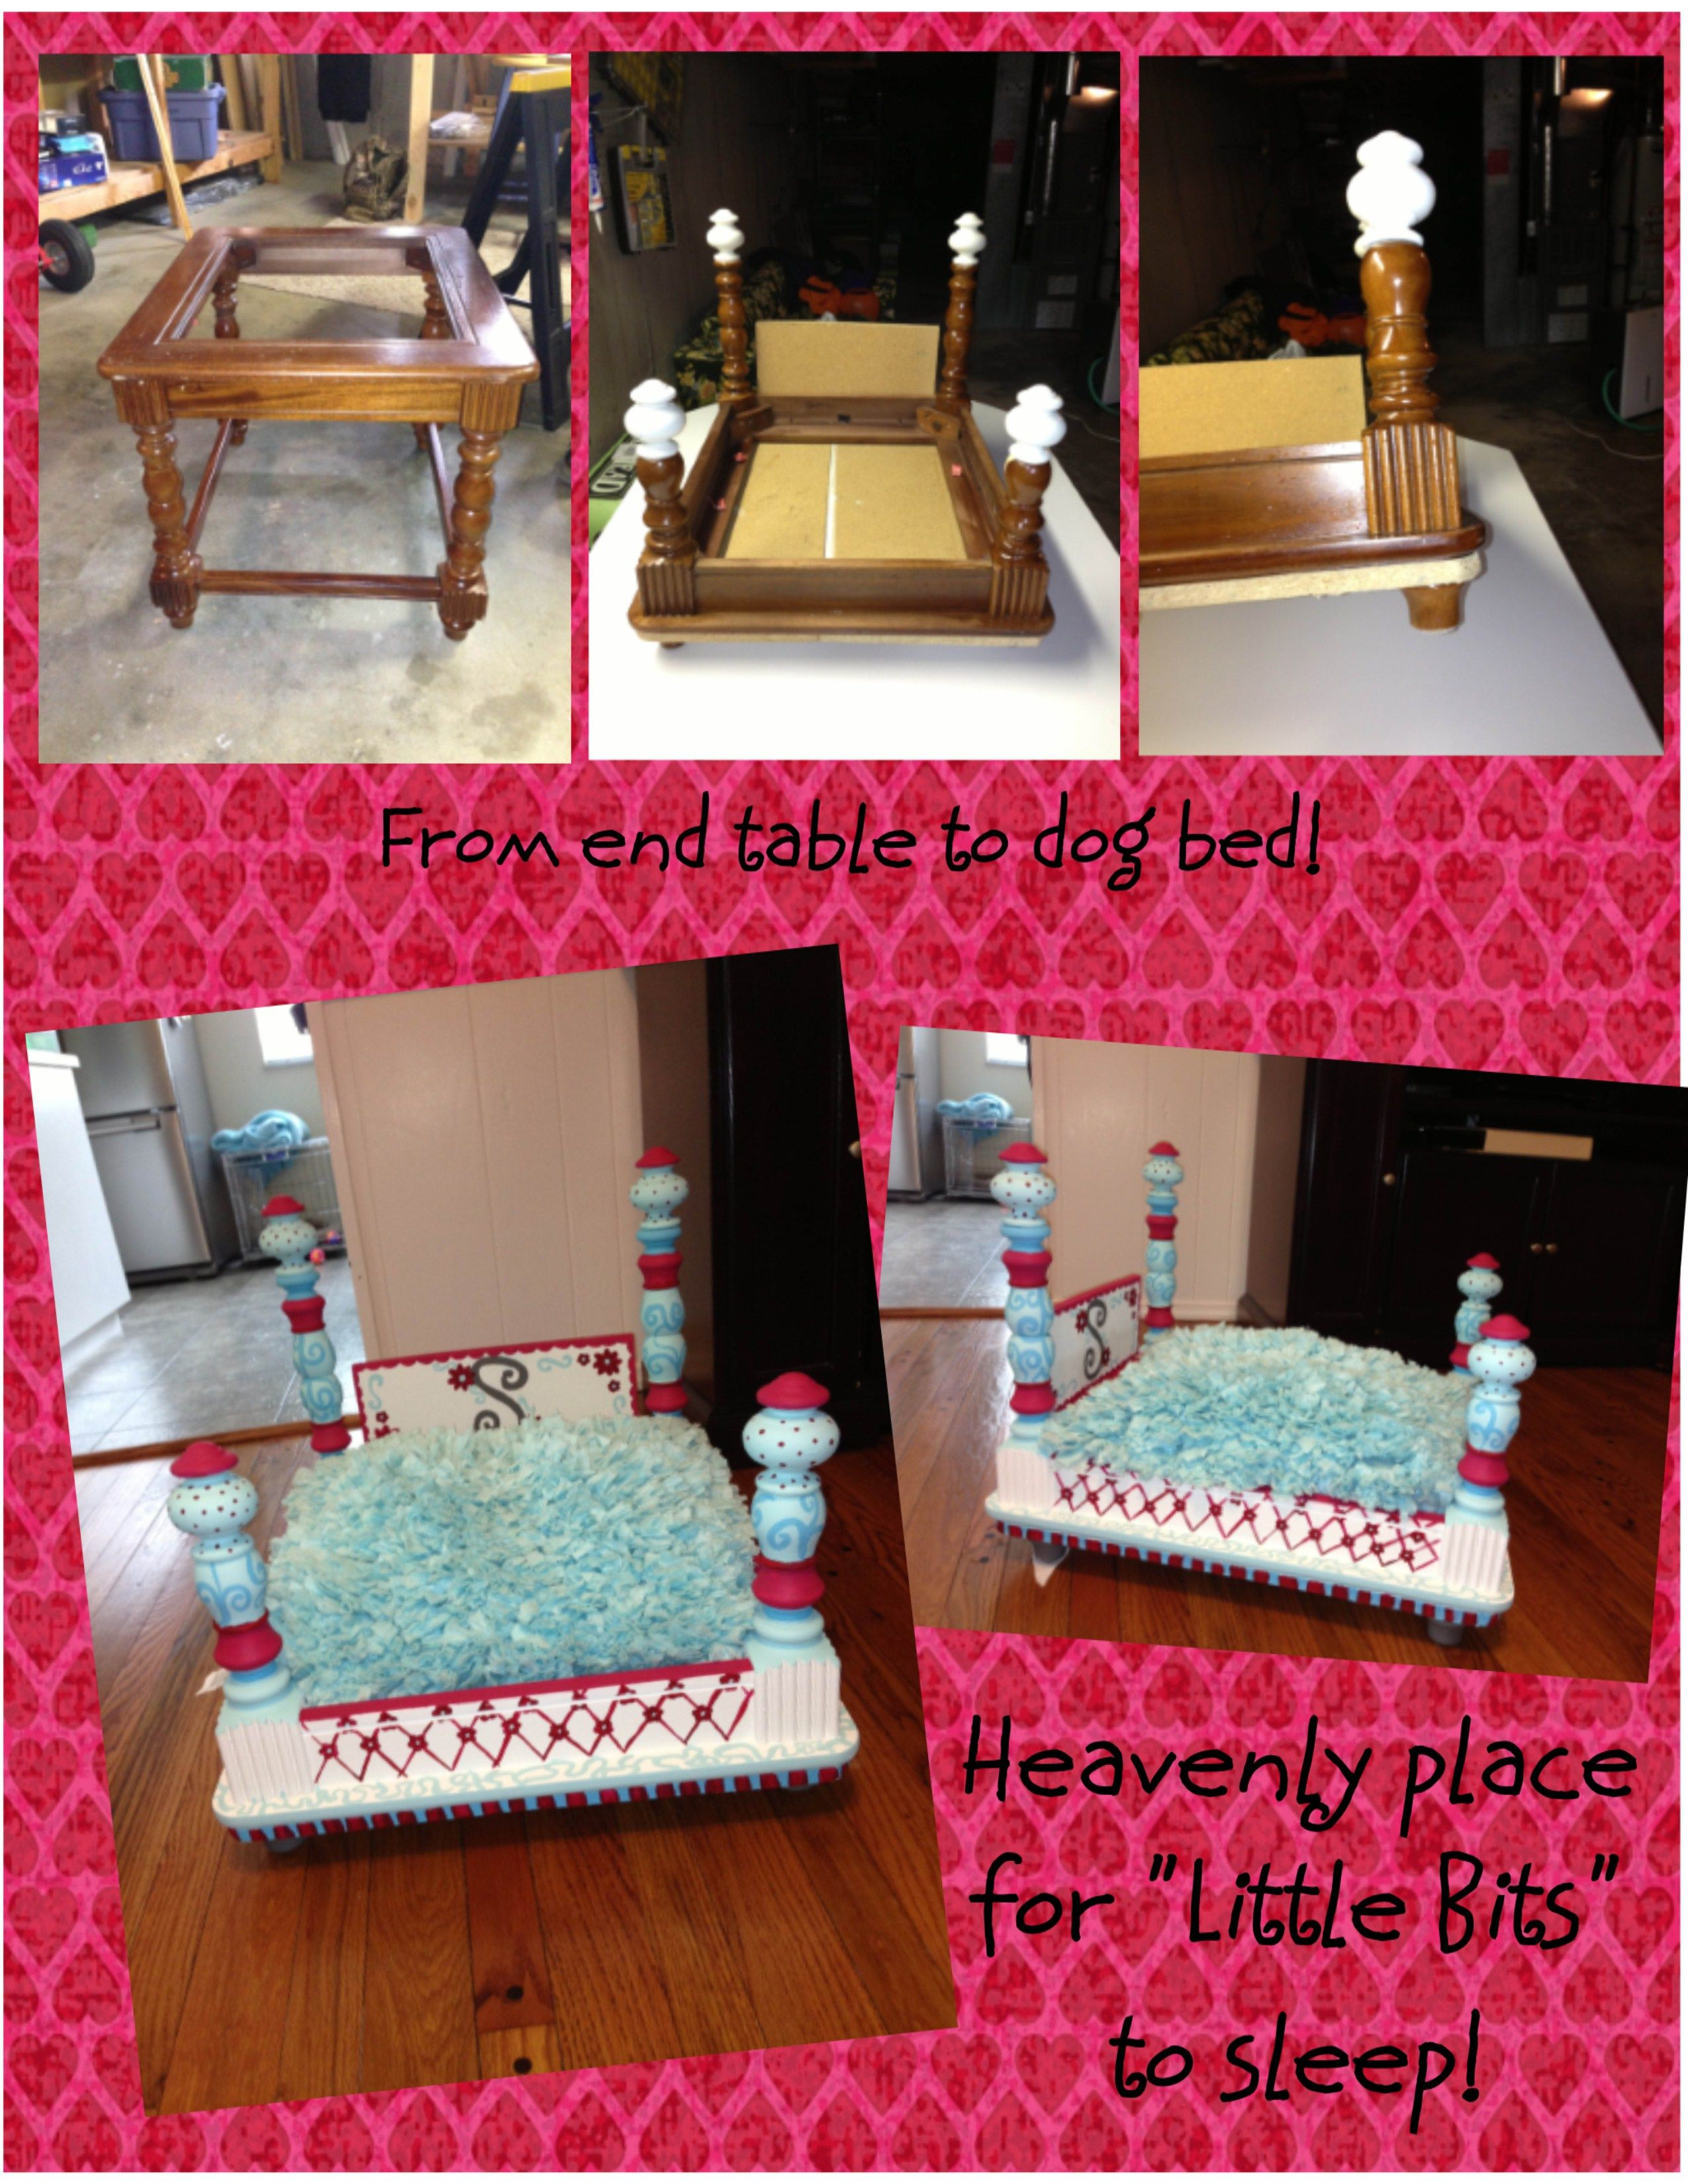 From end table to dog bed Perfect sleeping quarters Find